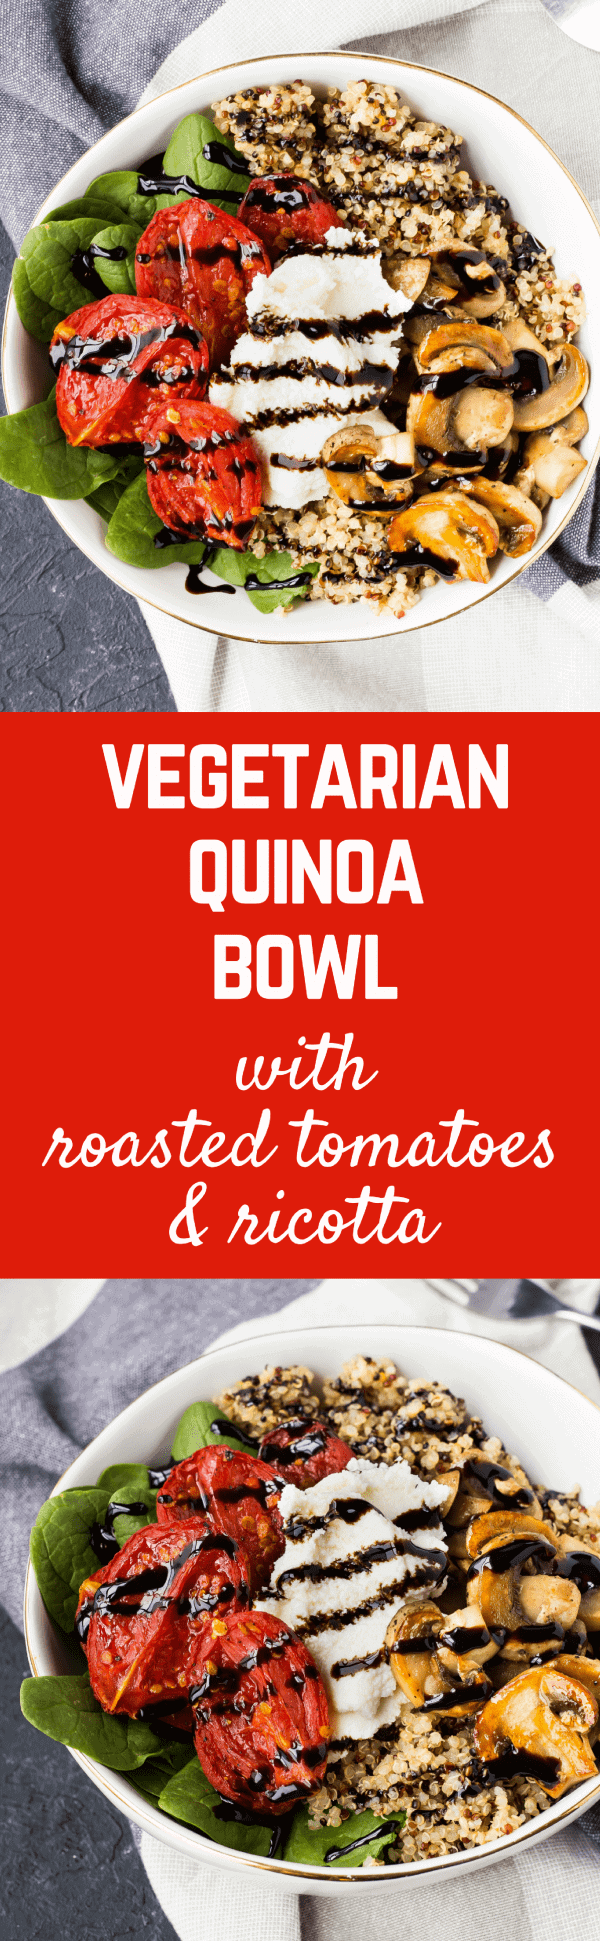 This quinoa bowl recipe is perfect for meal prep days - you'll love lunching on this all week! The roasted tomatoes are more flavorful than you'd believe! So great for meal-prepping! Get the easy and healthy recipe on RachelCooks.com!